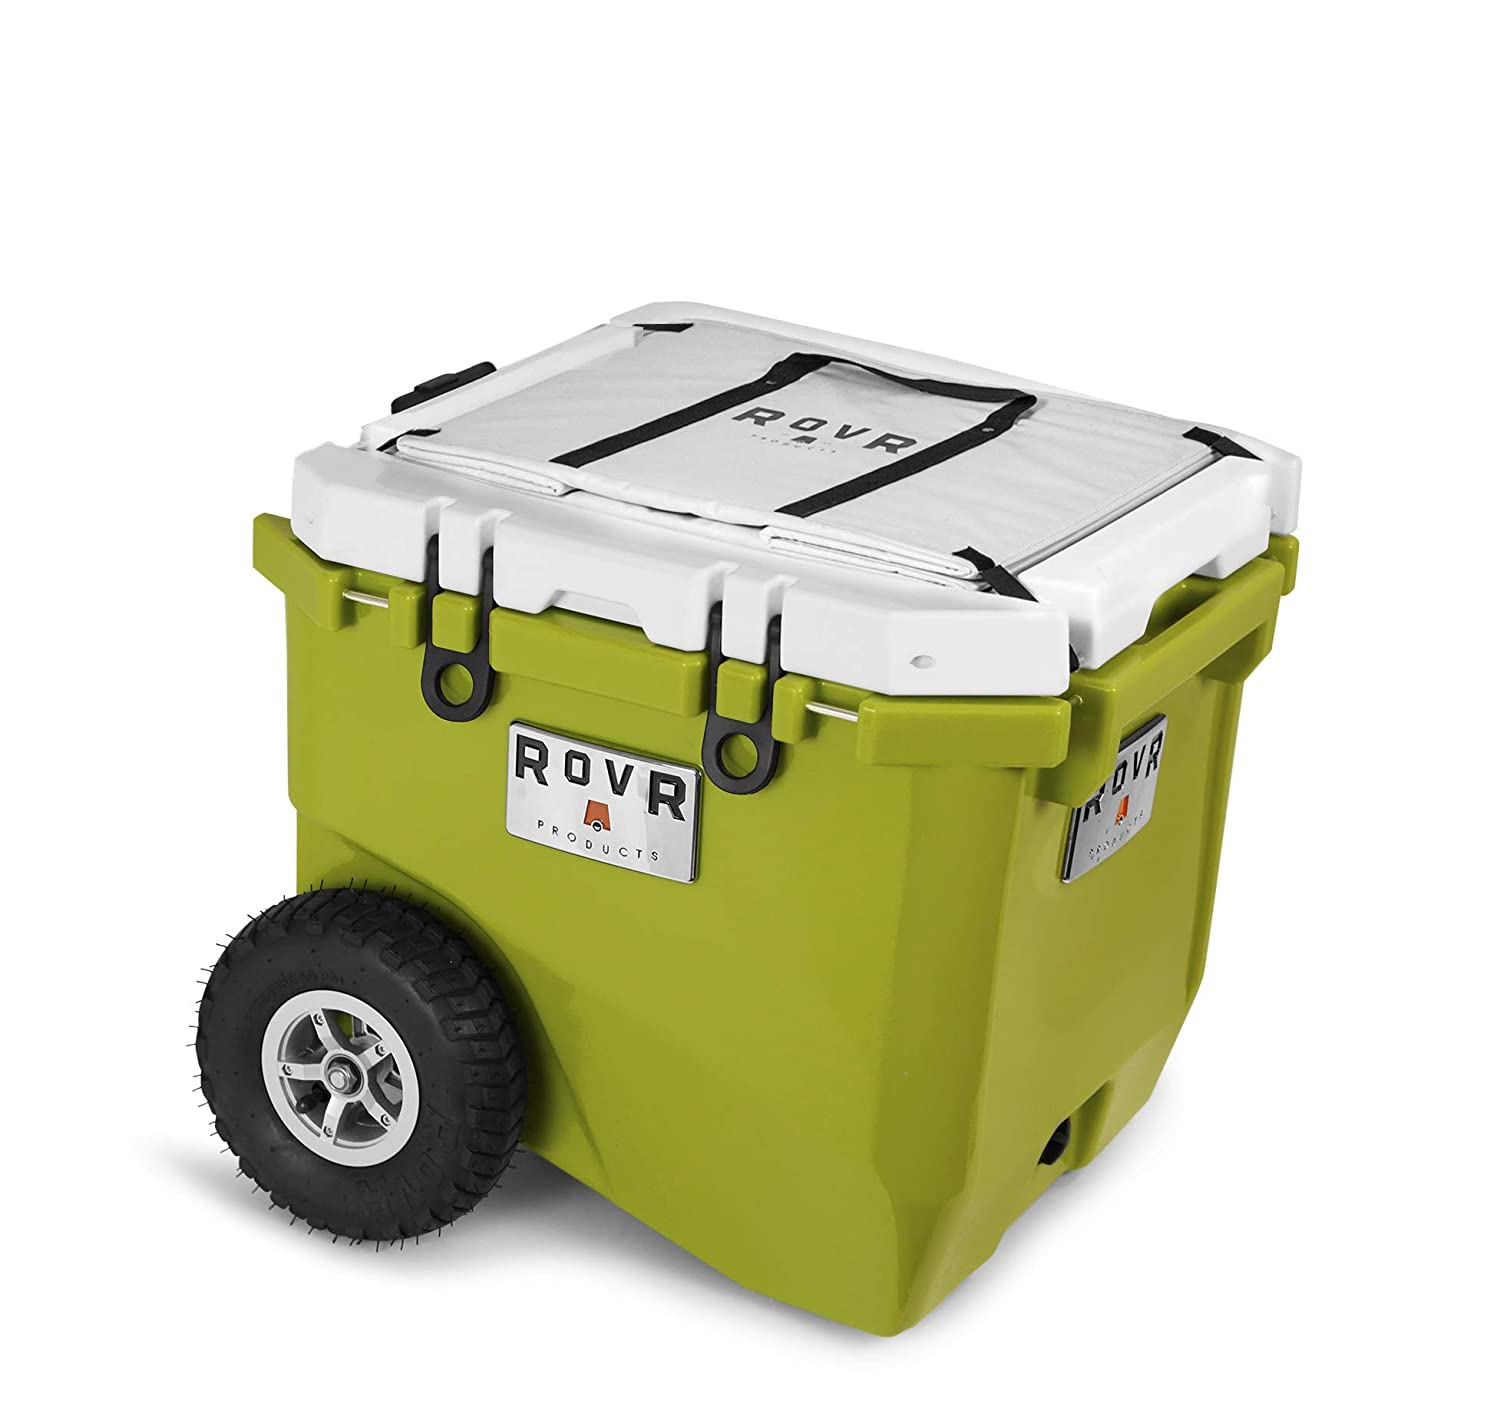 RovR Wheeled Camping Rolling Cooler with Wheels 45 qt  Best Coolers With Wheels